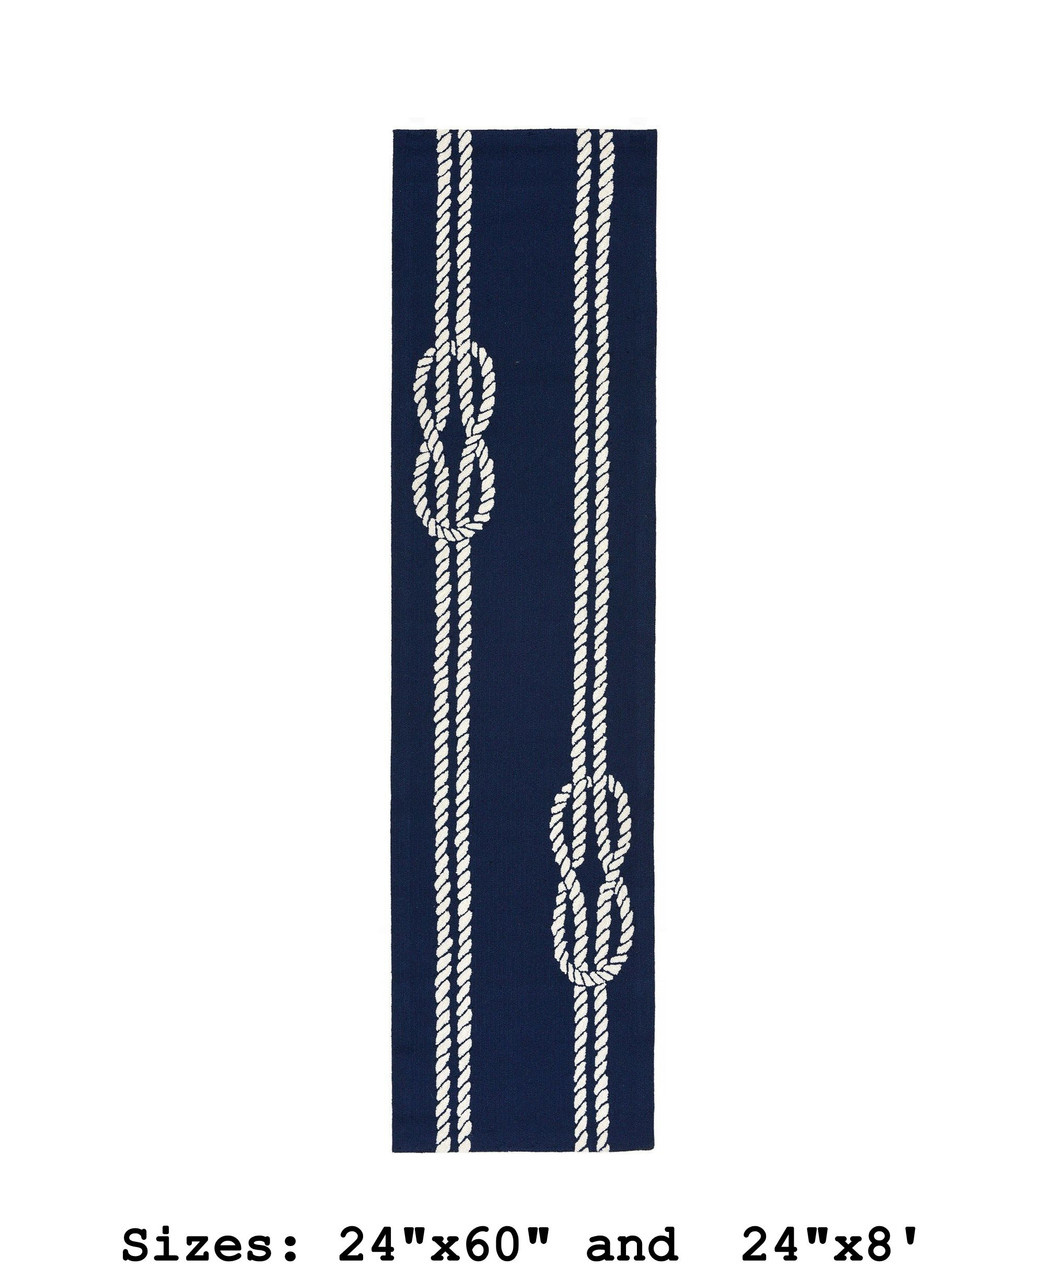 Navy Capri Nautical Ropes Indoor/Outdoor Rug - Runner